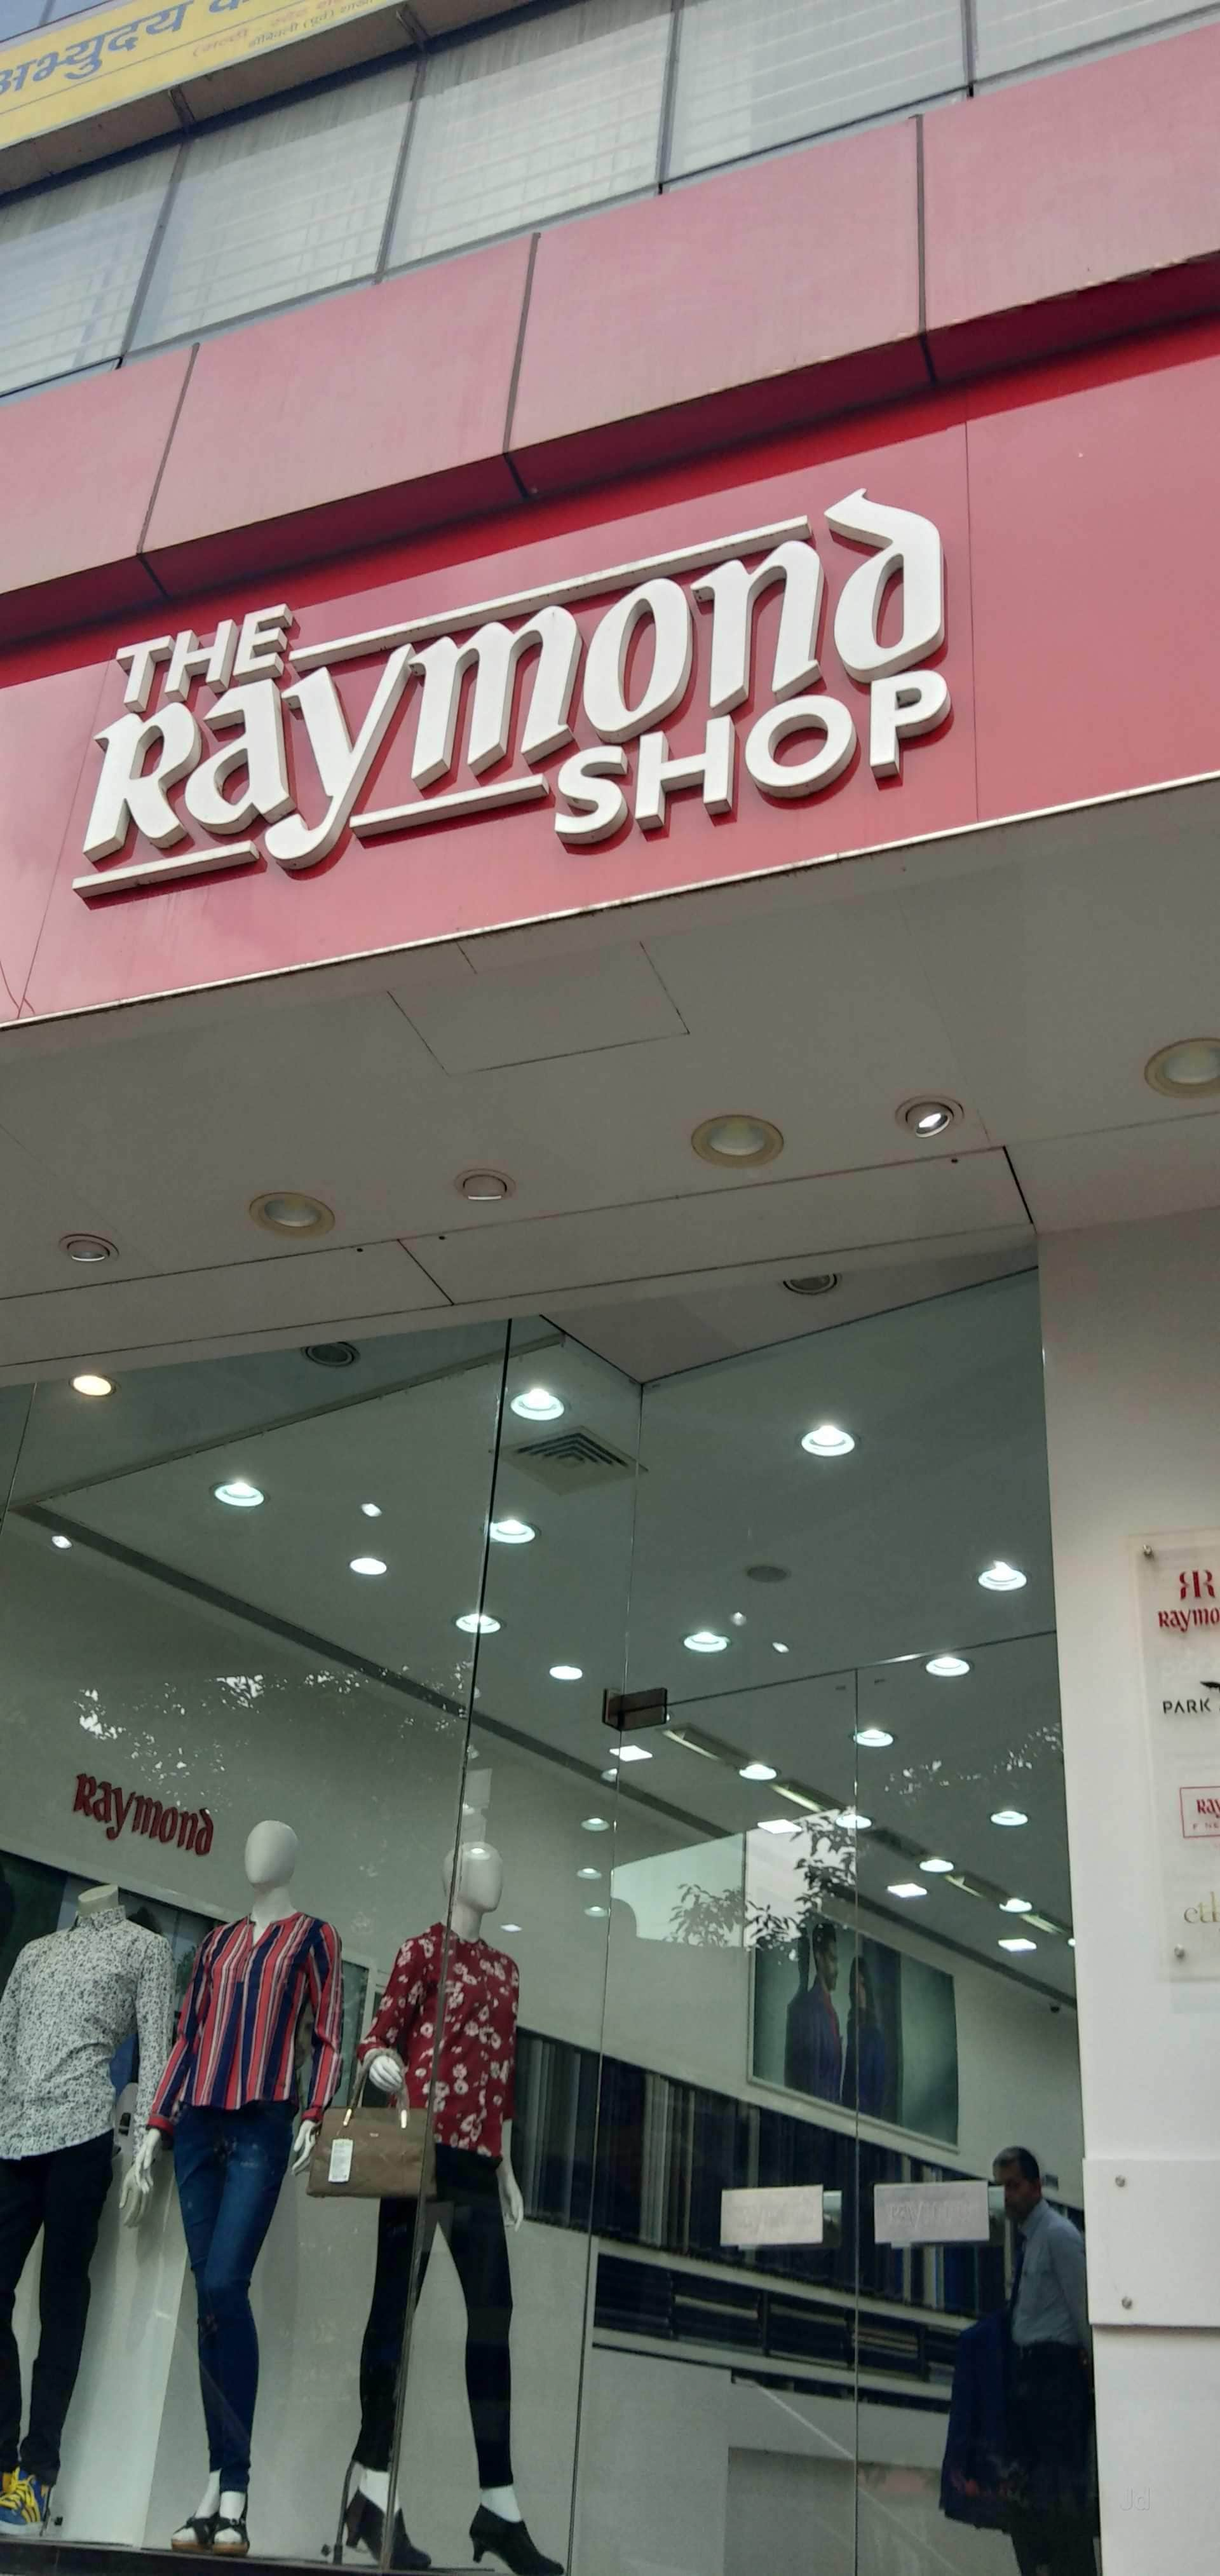 d1bef6e7e17 Find list of The Raymond Shop in Mumbai - The Raymond Stores - Justdial